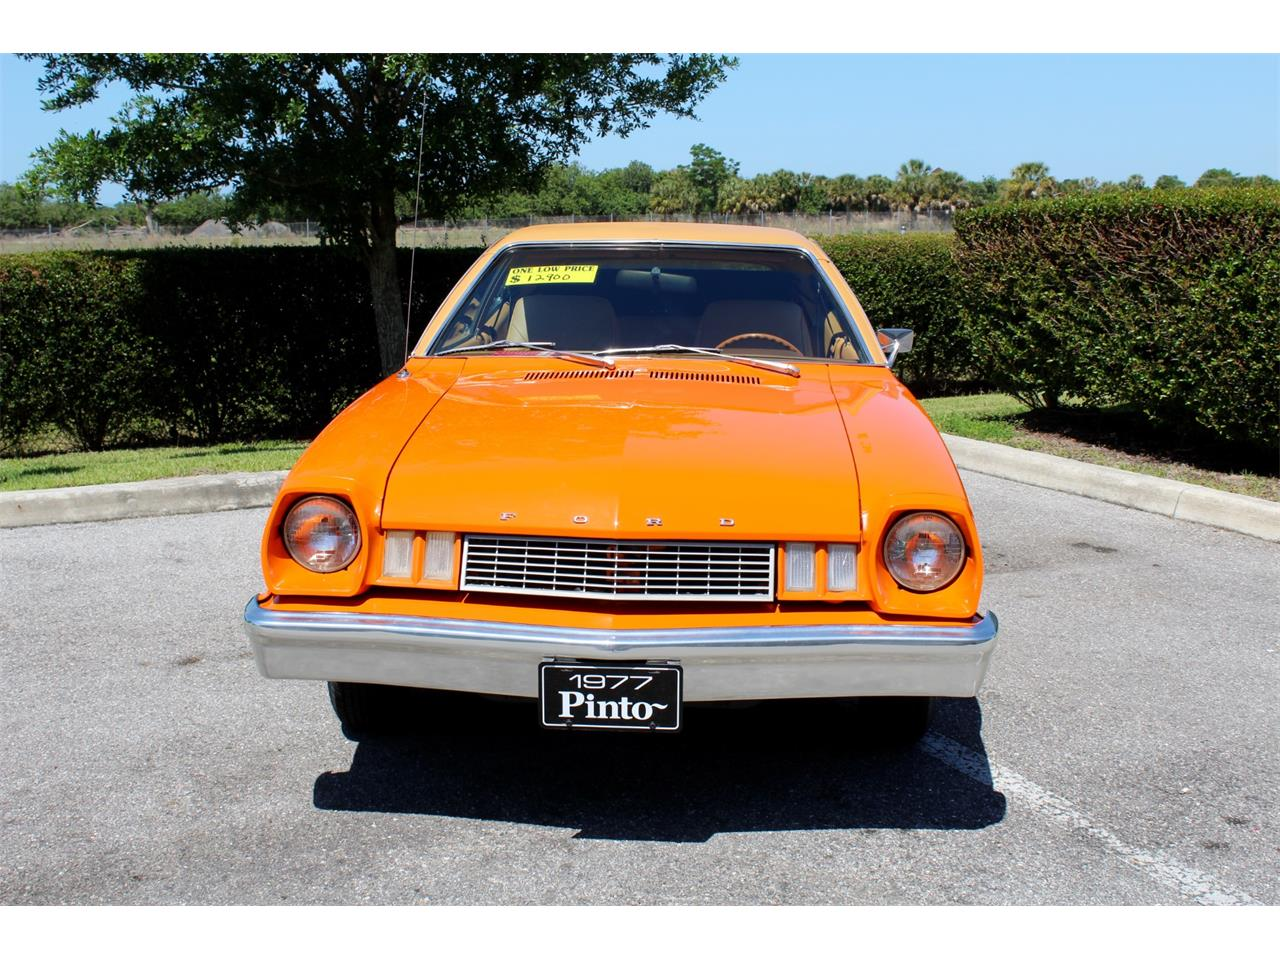 Large picture of 77 pinto n7md